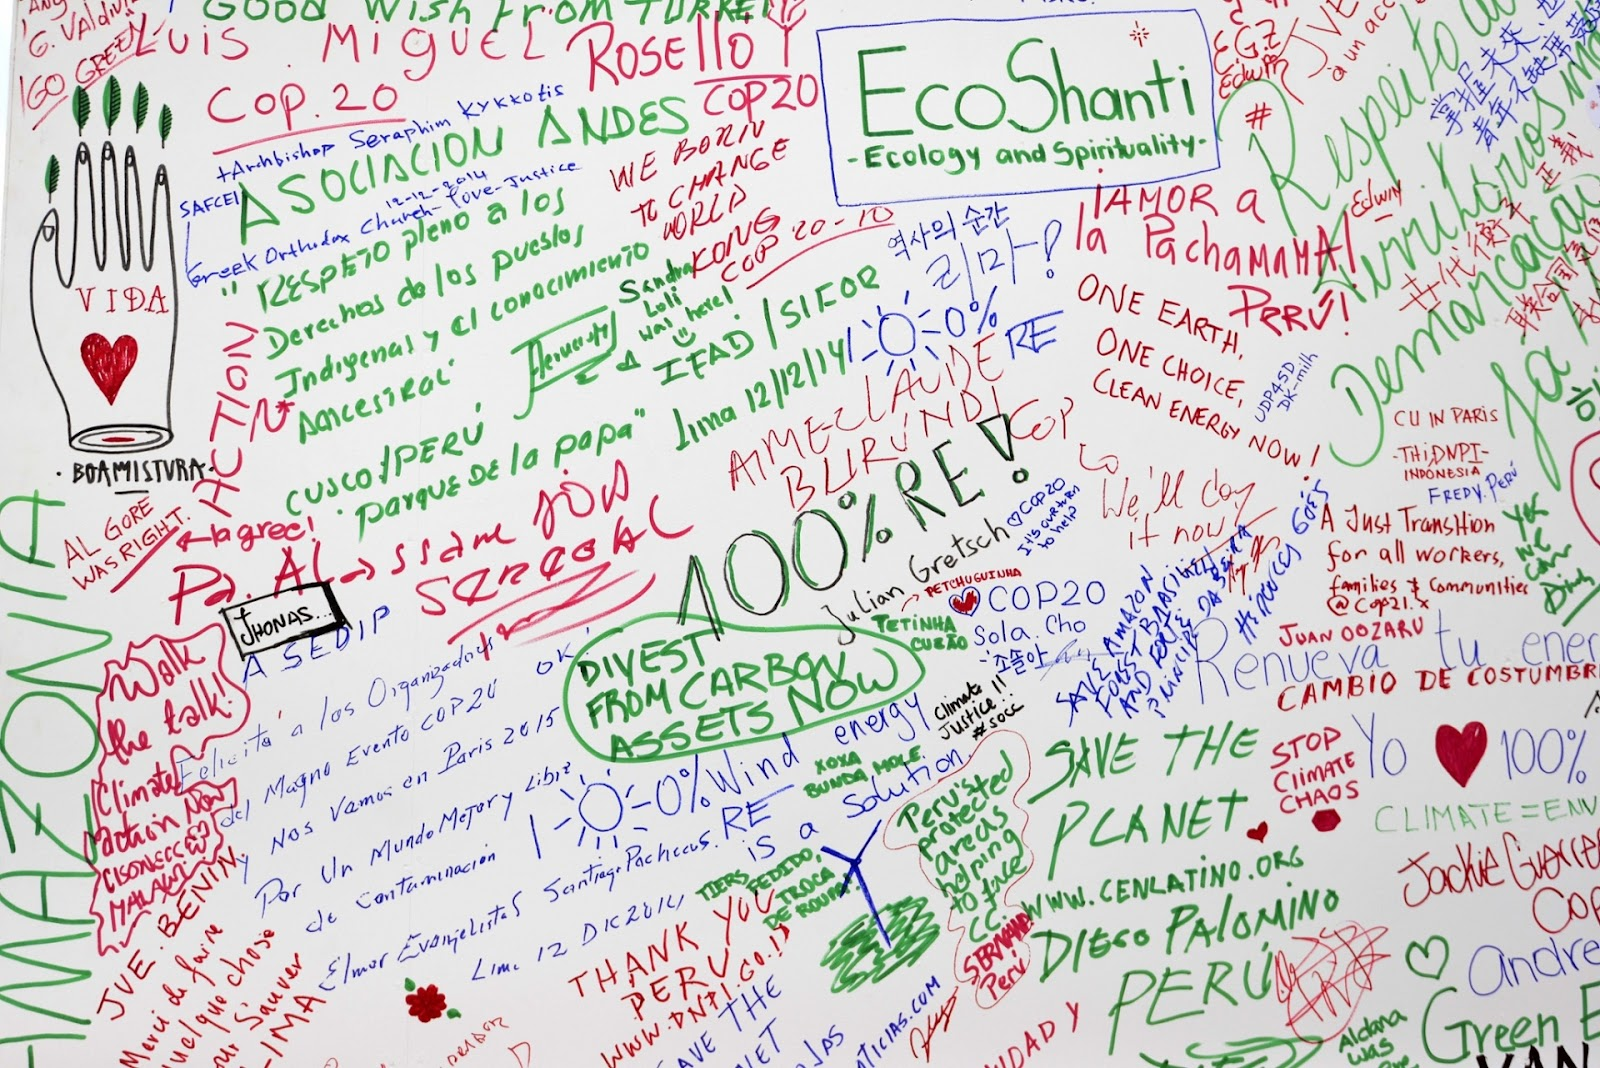 Photograph, Cris Bouroncle: Word graffiti from Cop20 Lima climate change talks.